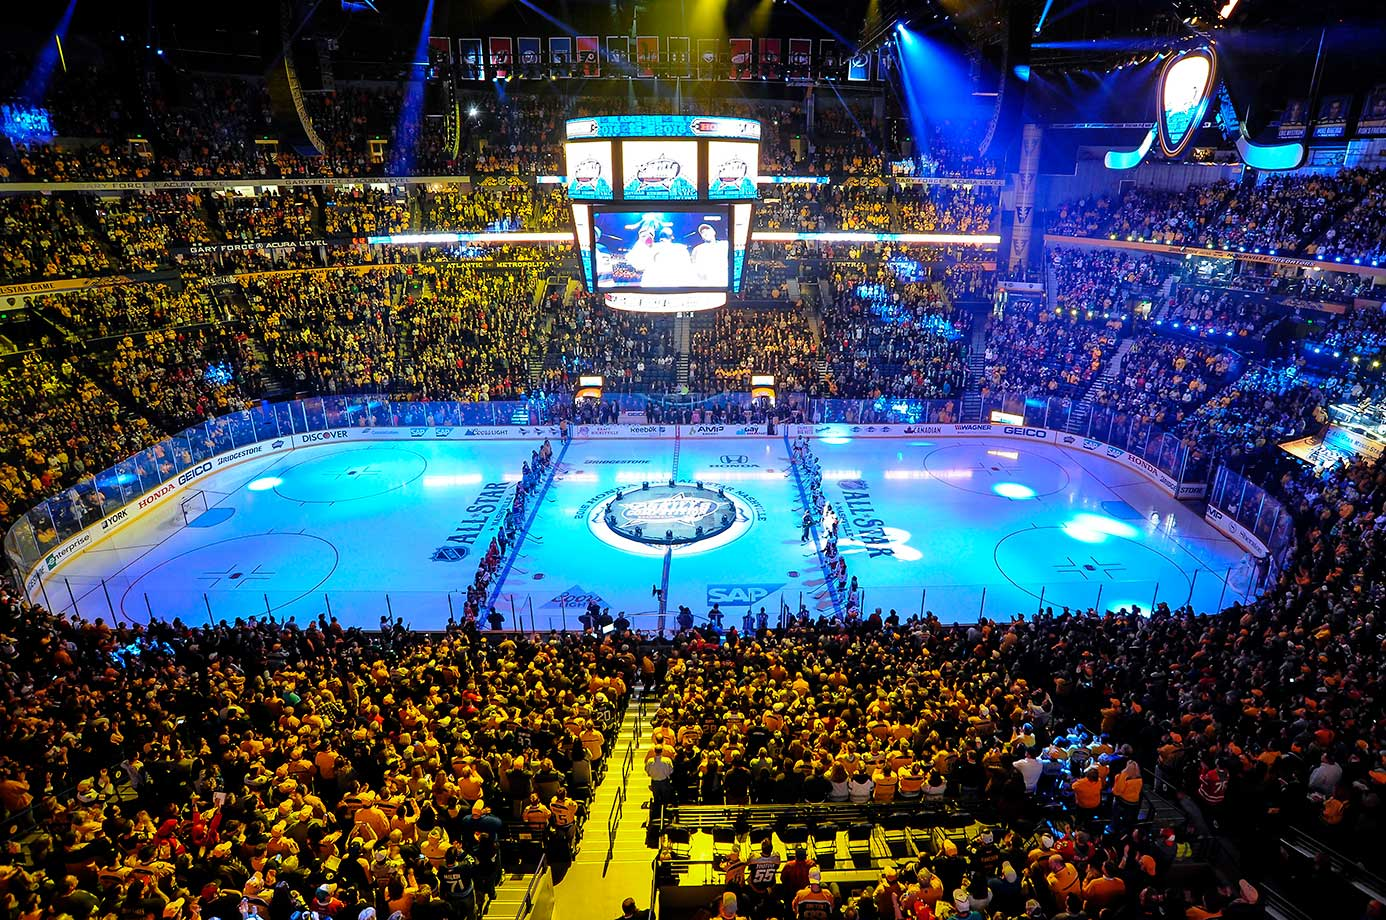 The start of the NHL All-Star weekend during an NHL All Star Skills competition at Bridgestone Arena in Nashville.